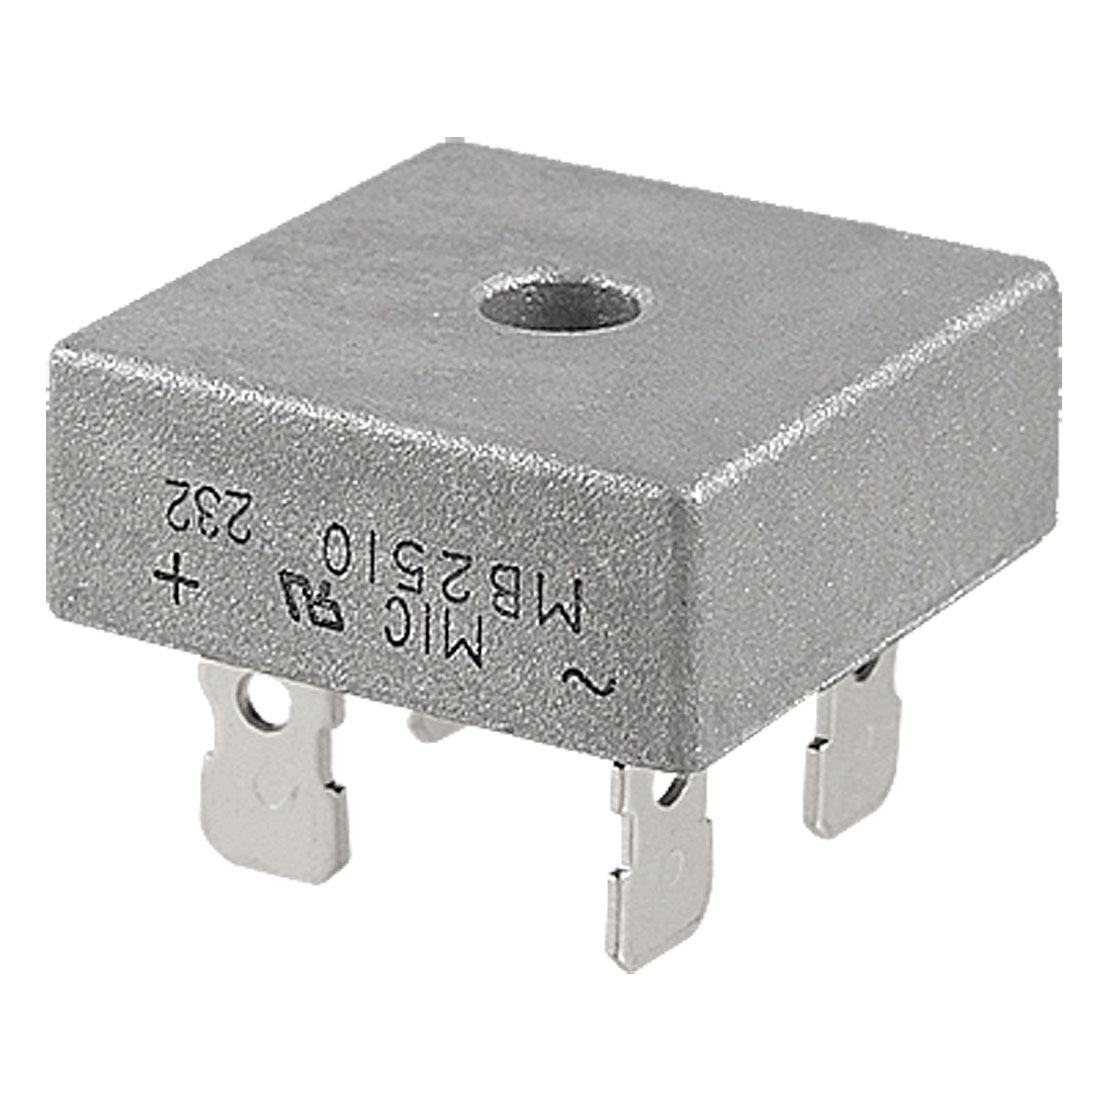 MB2510 Half-Wave Single Phase Silicon Bridge Rectifier 1000V 25A